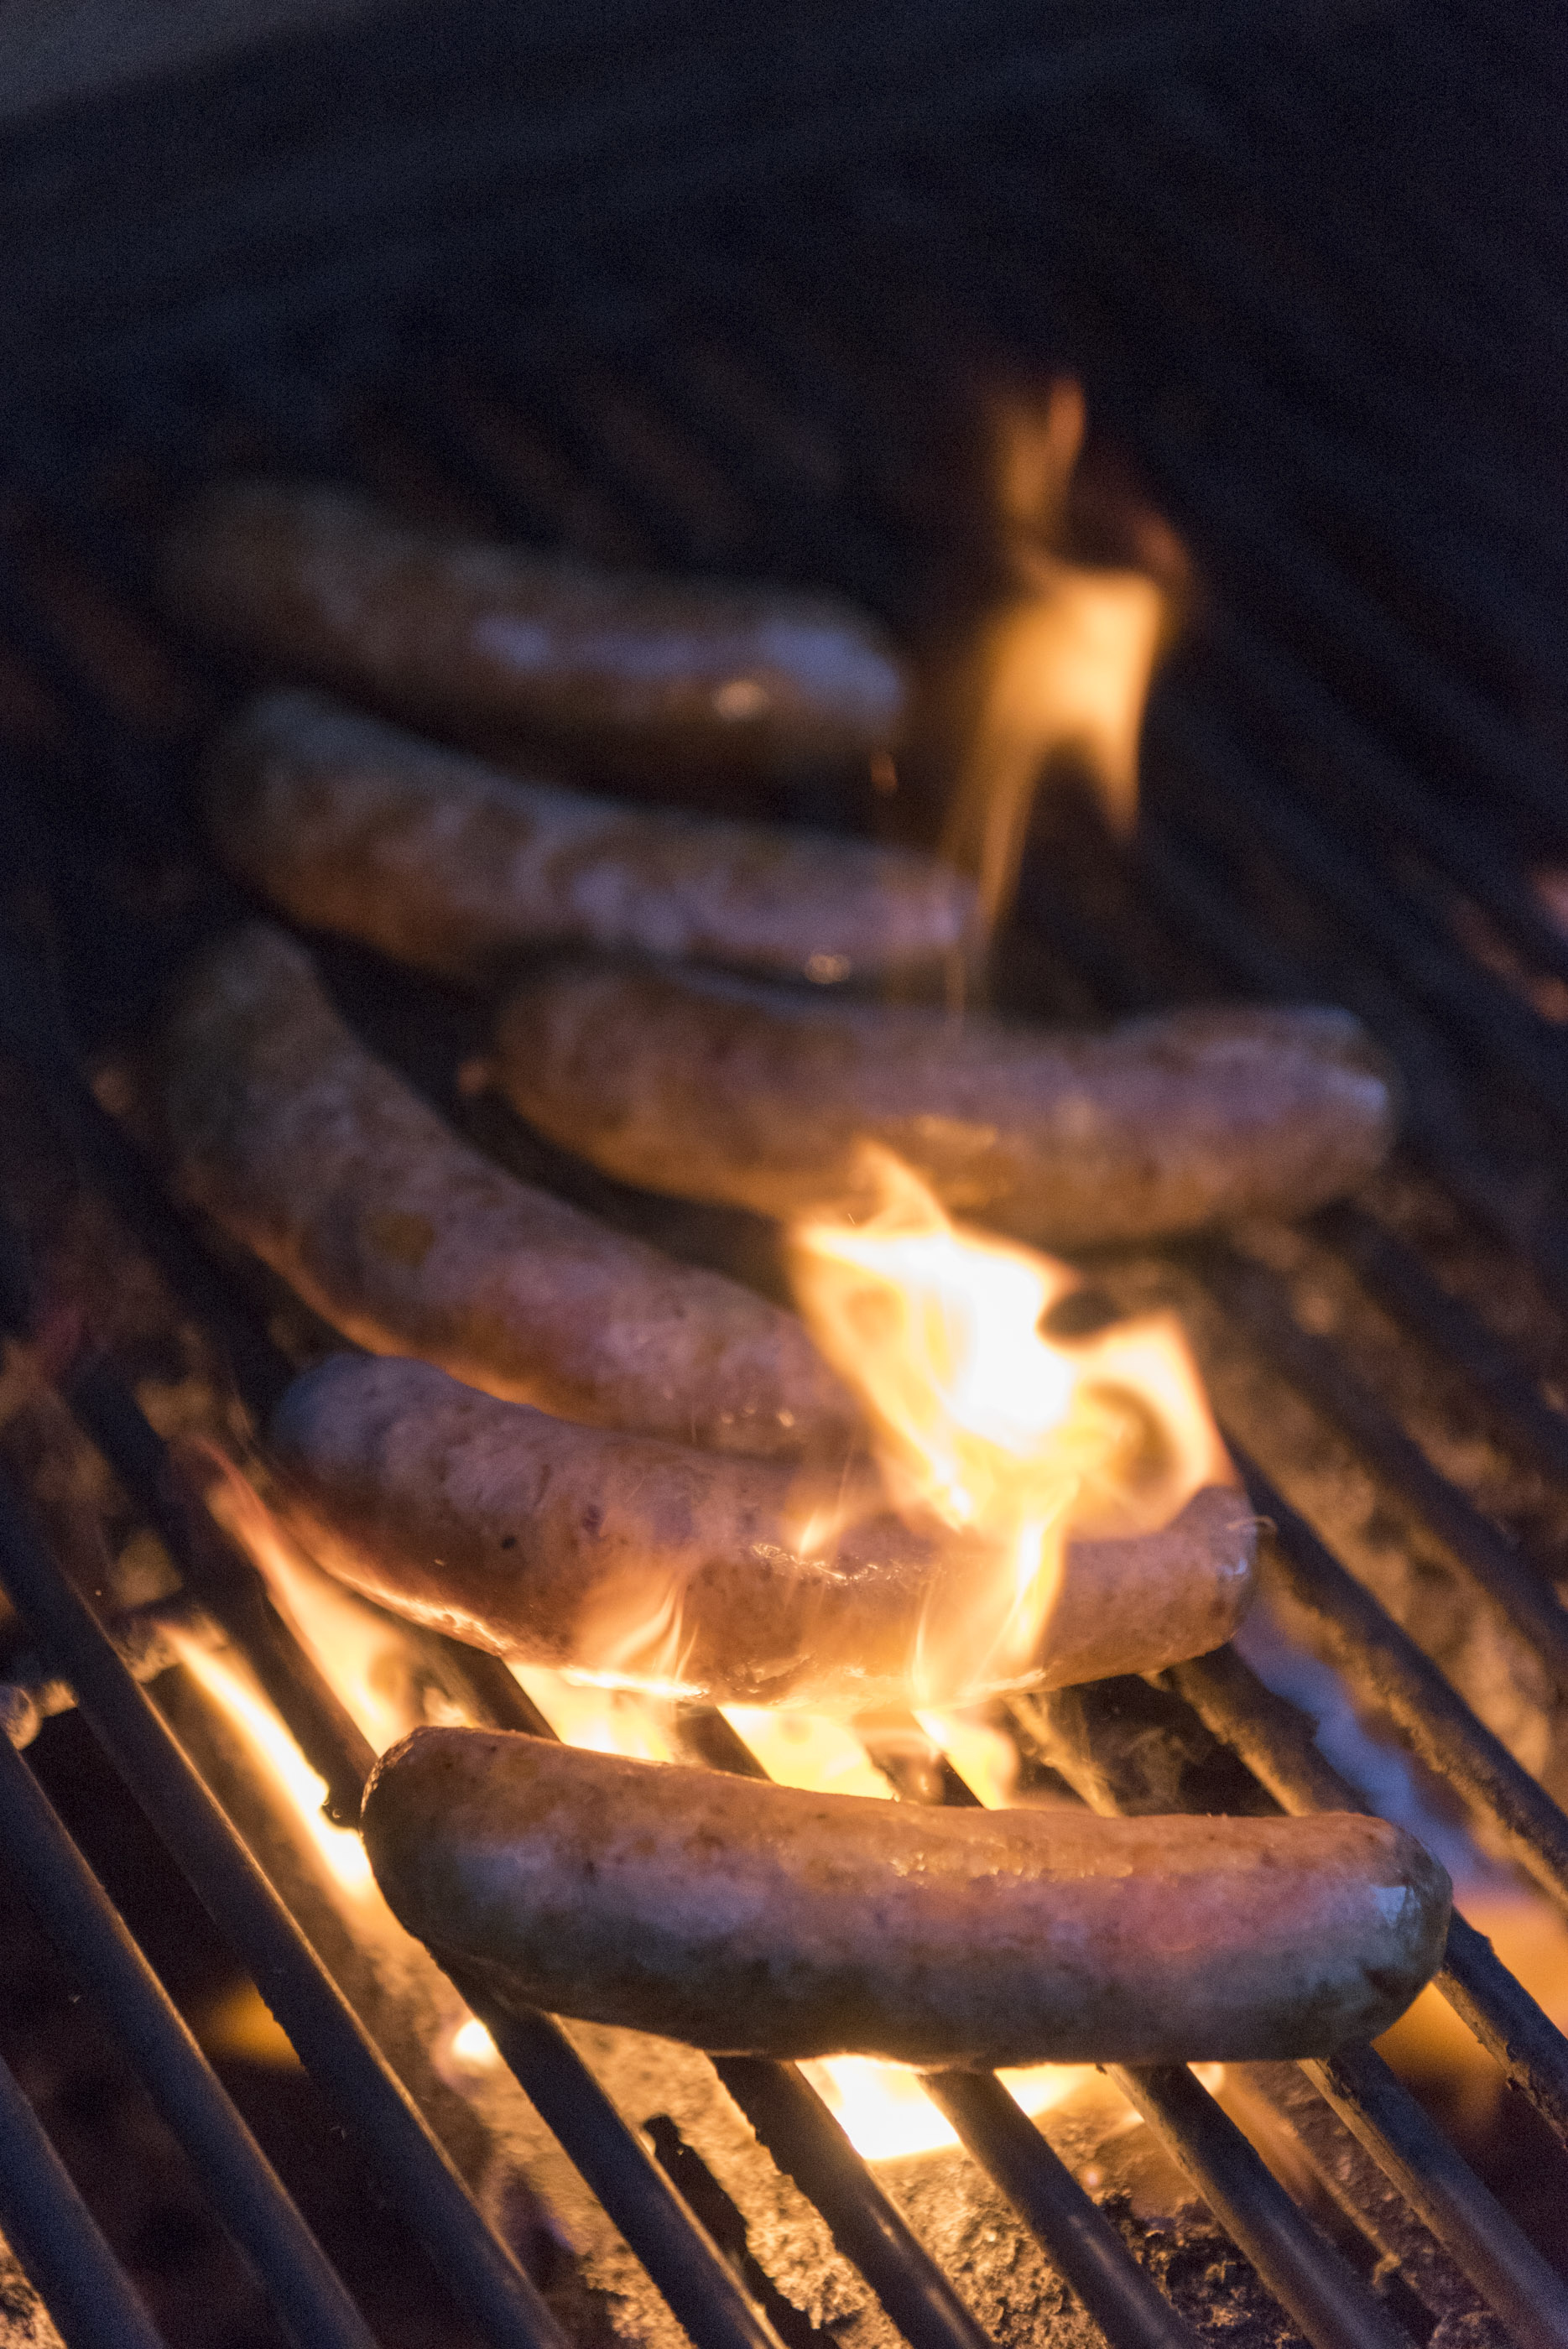 Sausages are grilled as firefighter Ted Ramey prepares dinner for the six man crew at Las Vegas Fire & Rescue's Fire Station 41 in Las Vegas Monday, Jan. 11, 2016. The dinner consists of Italian stuffed shells, grilled sausage, garlic bread, green salad and banana cream pie. Jason Ogulnik/Las Vegas Review-Journal